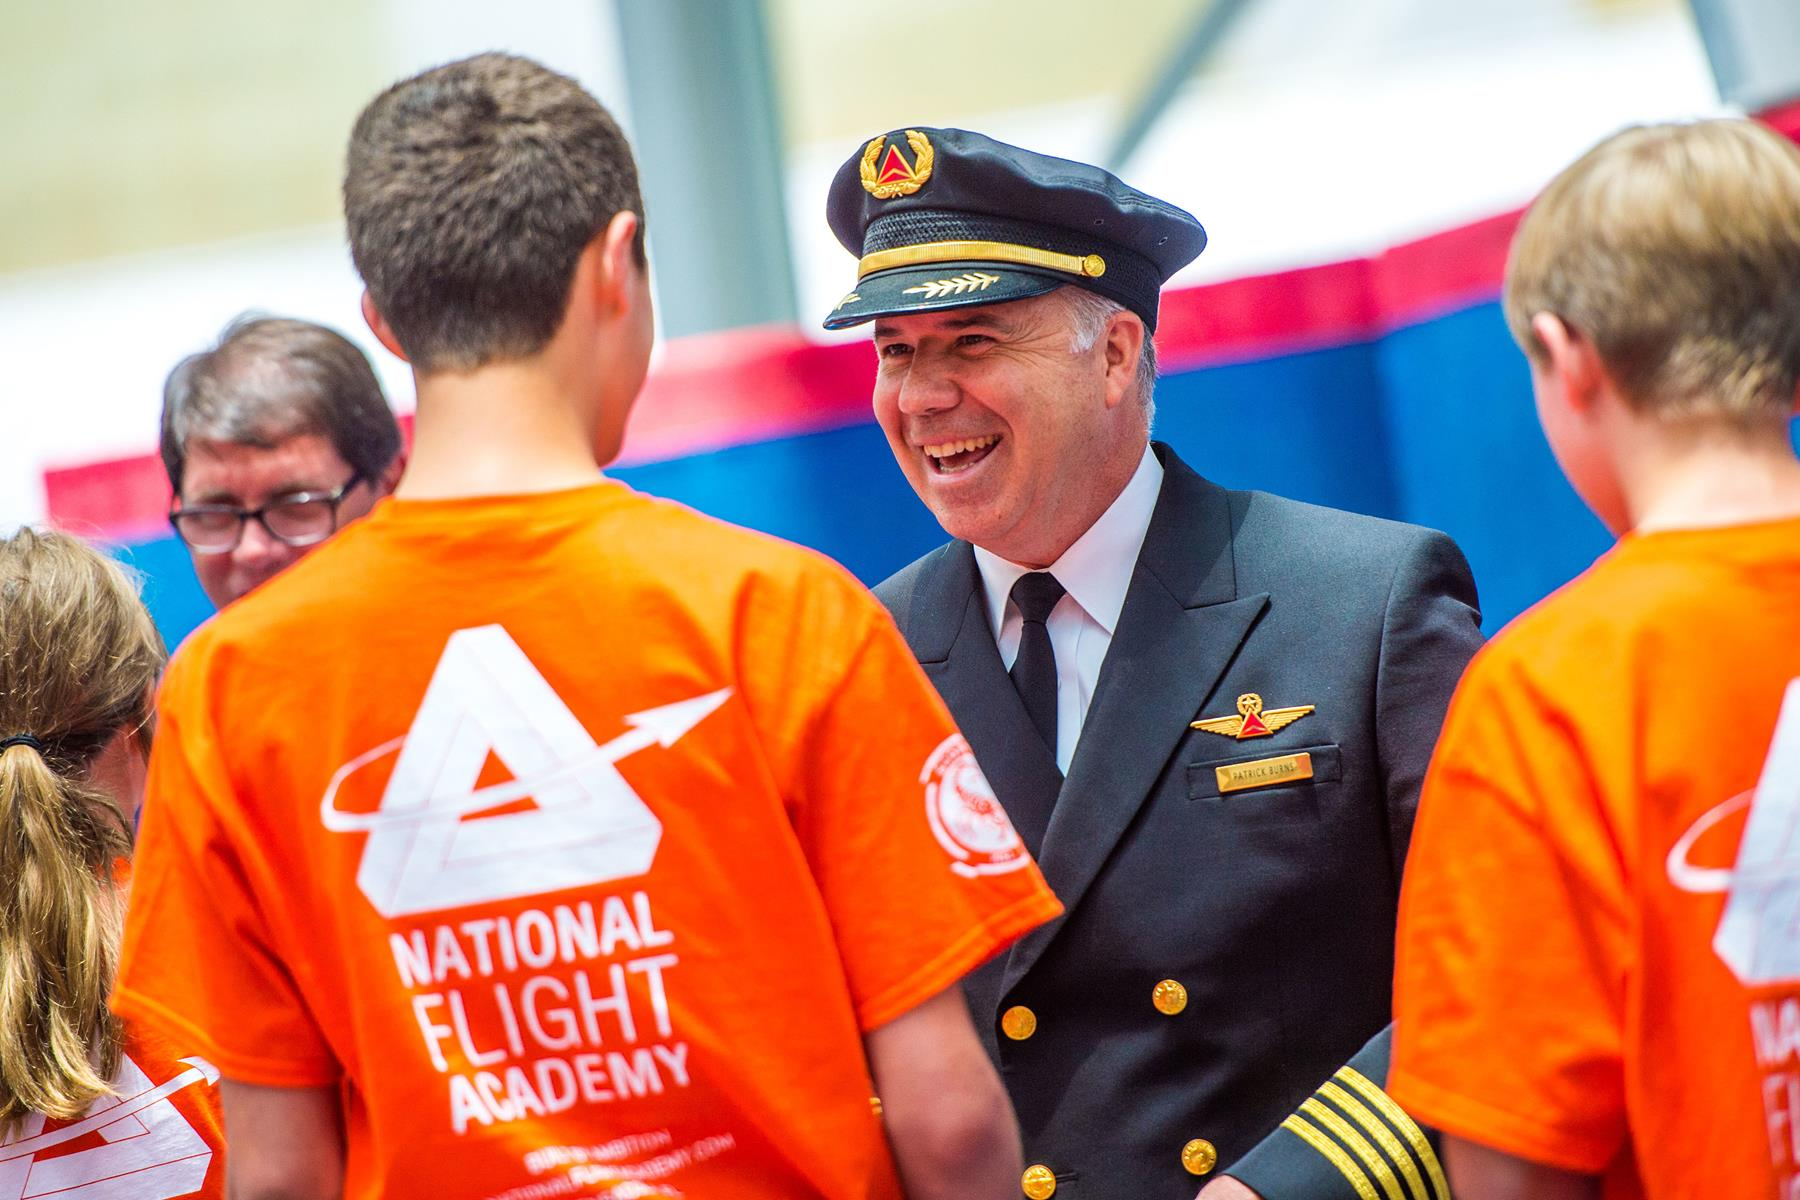 National Flight Academy Promotes STEM Education with Military Scholarship